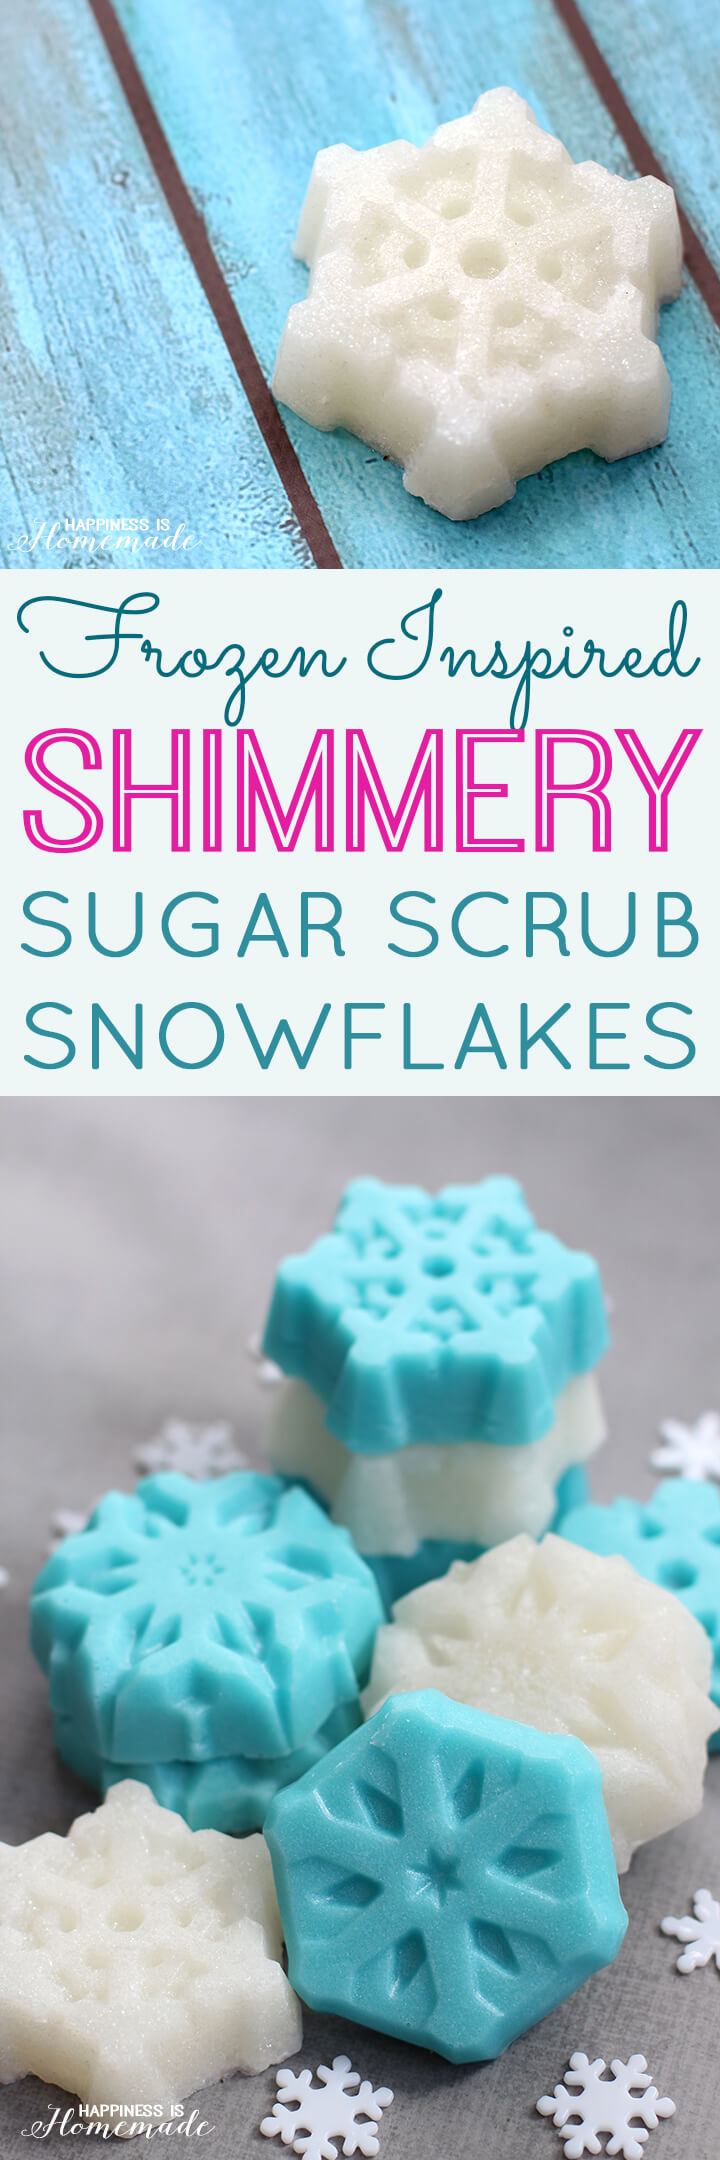 How to Make Frozen Inspired Shimmery Sugar Scrub Snowflake Bars